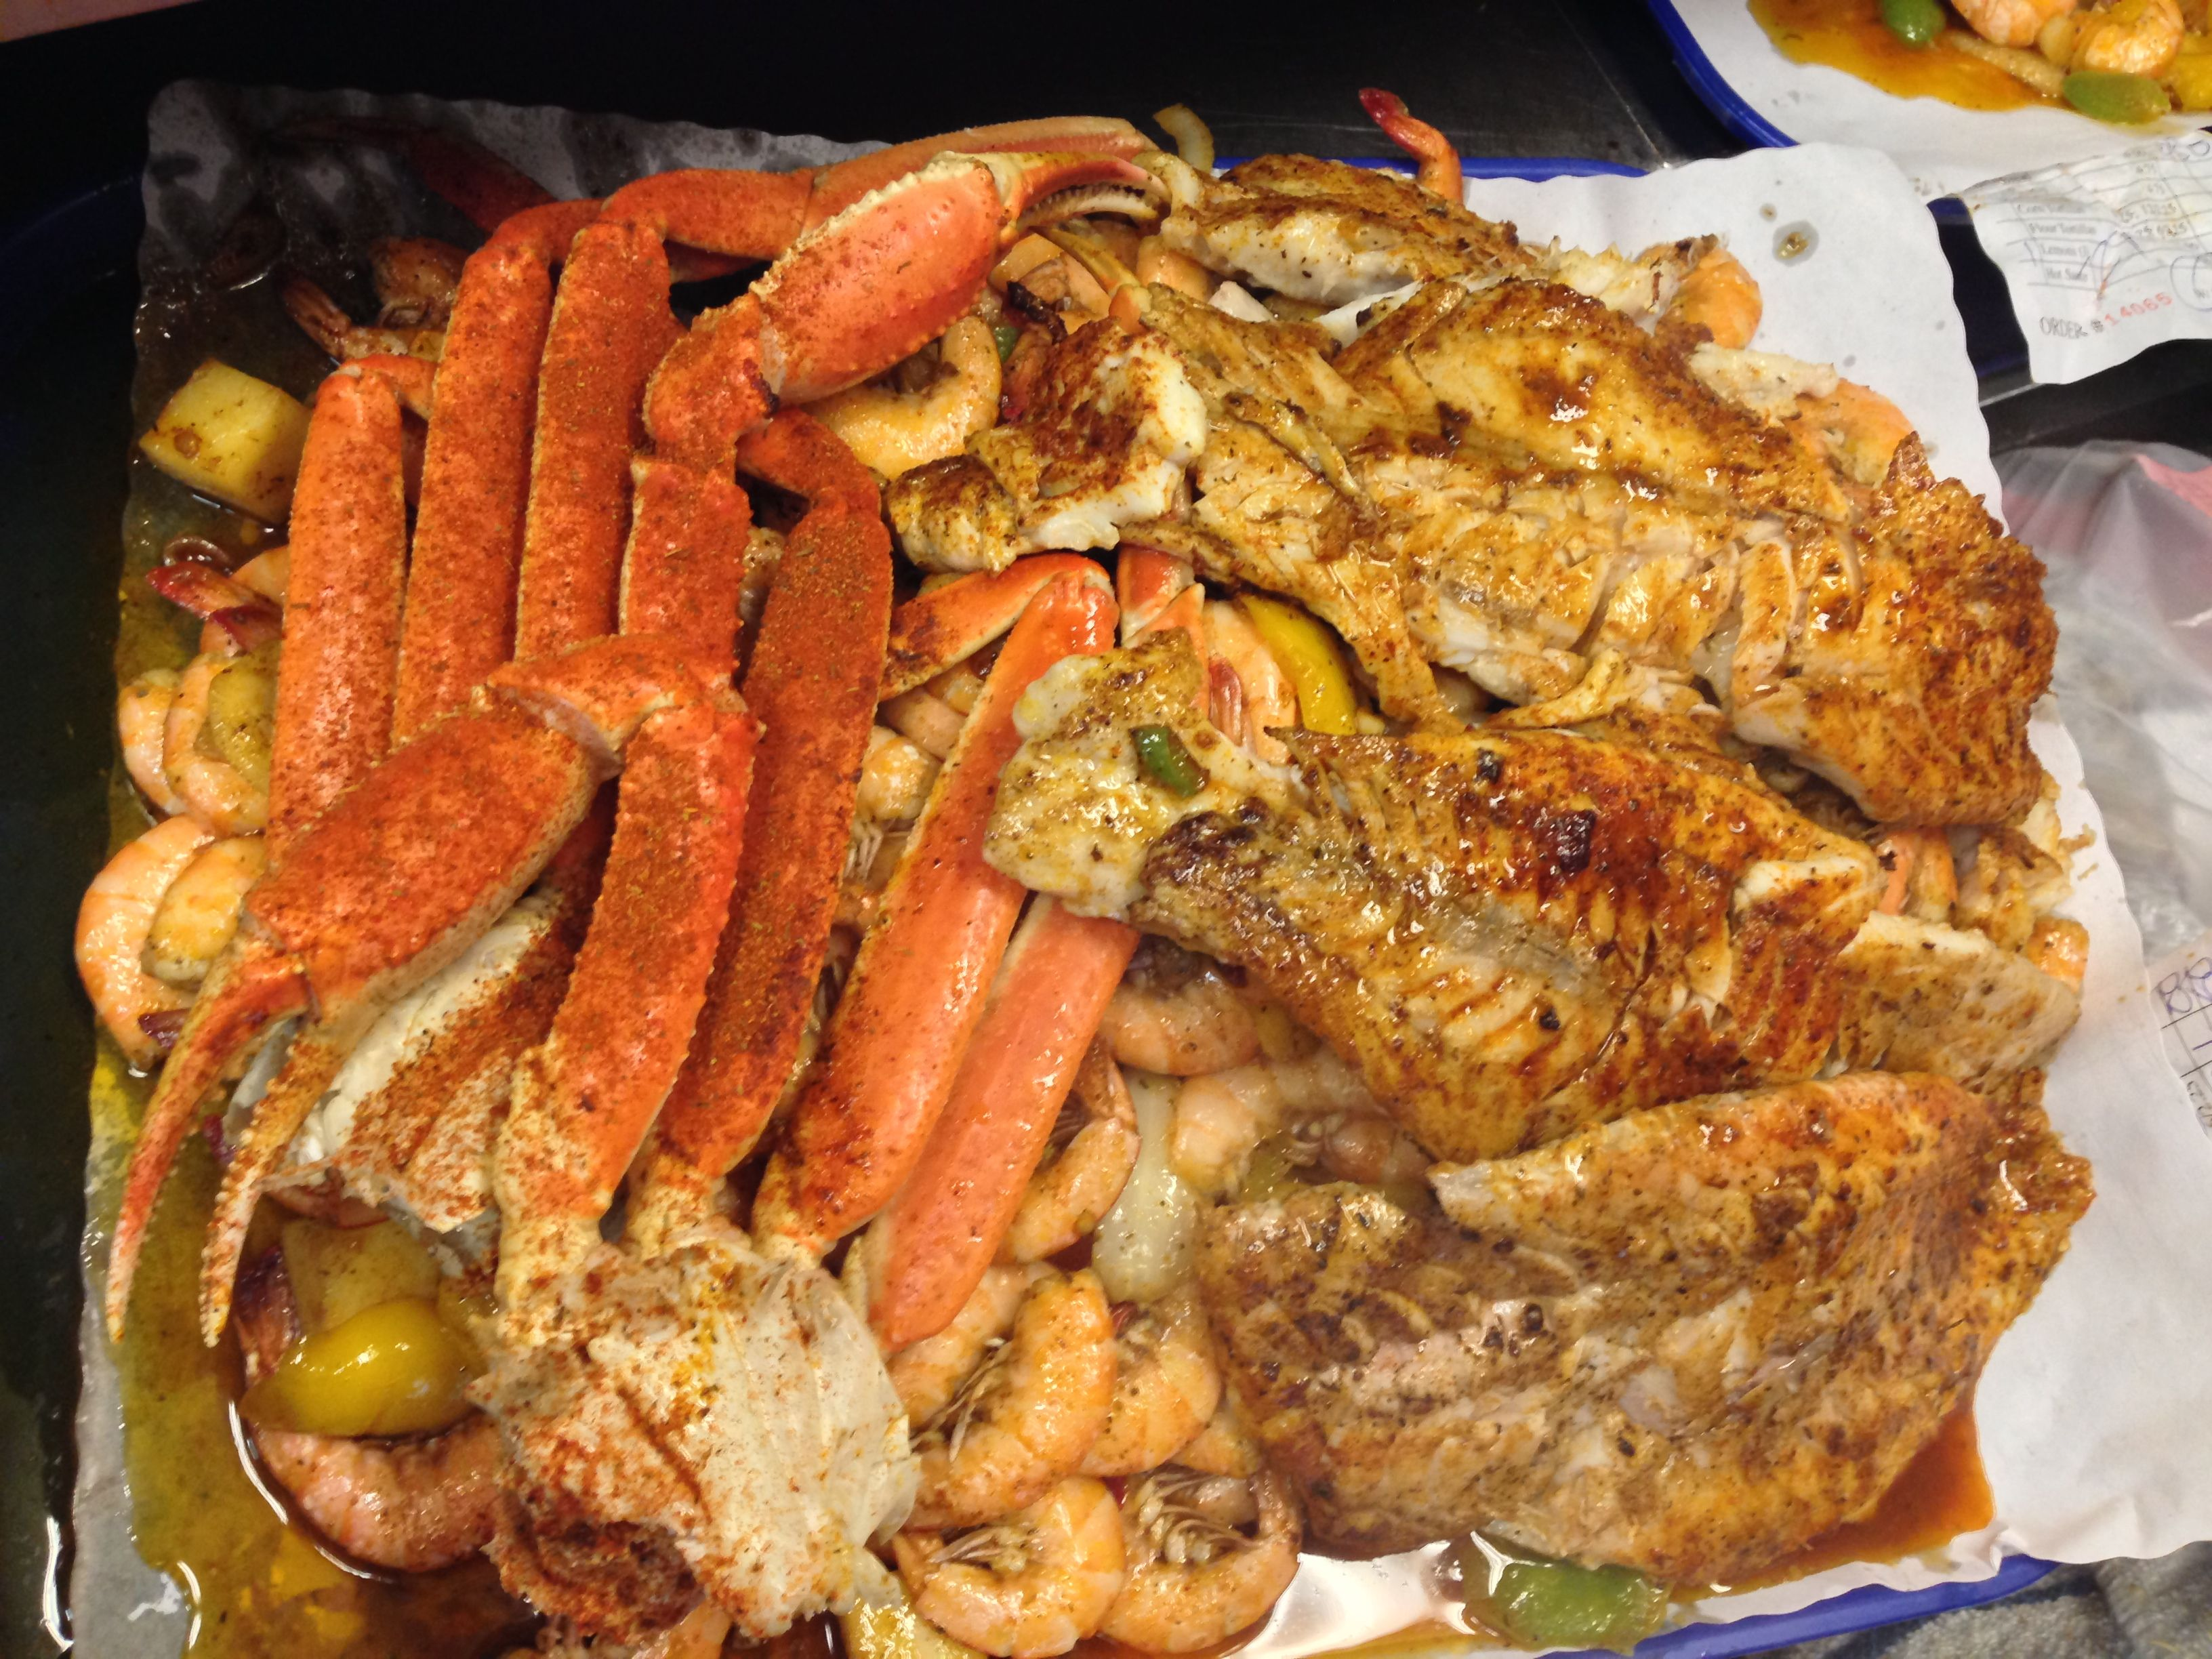 Snow crab and red snapper fillet over shrimp and veggies for San pedro fish market super tray